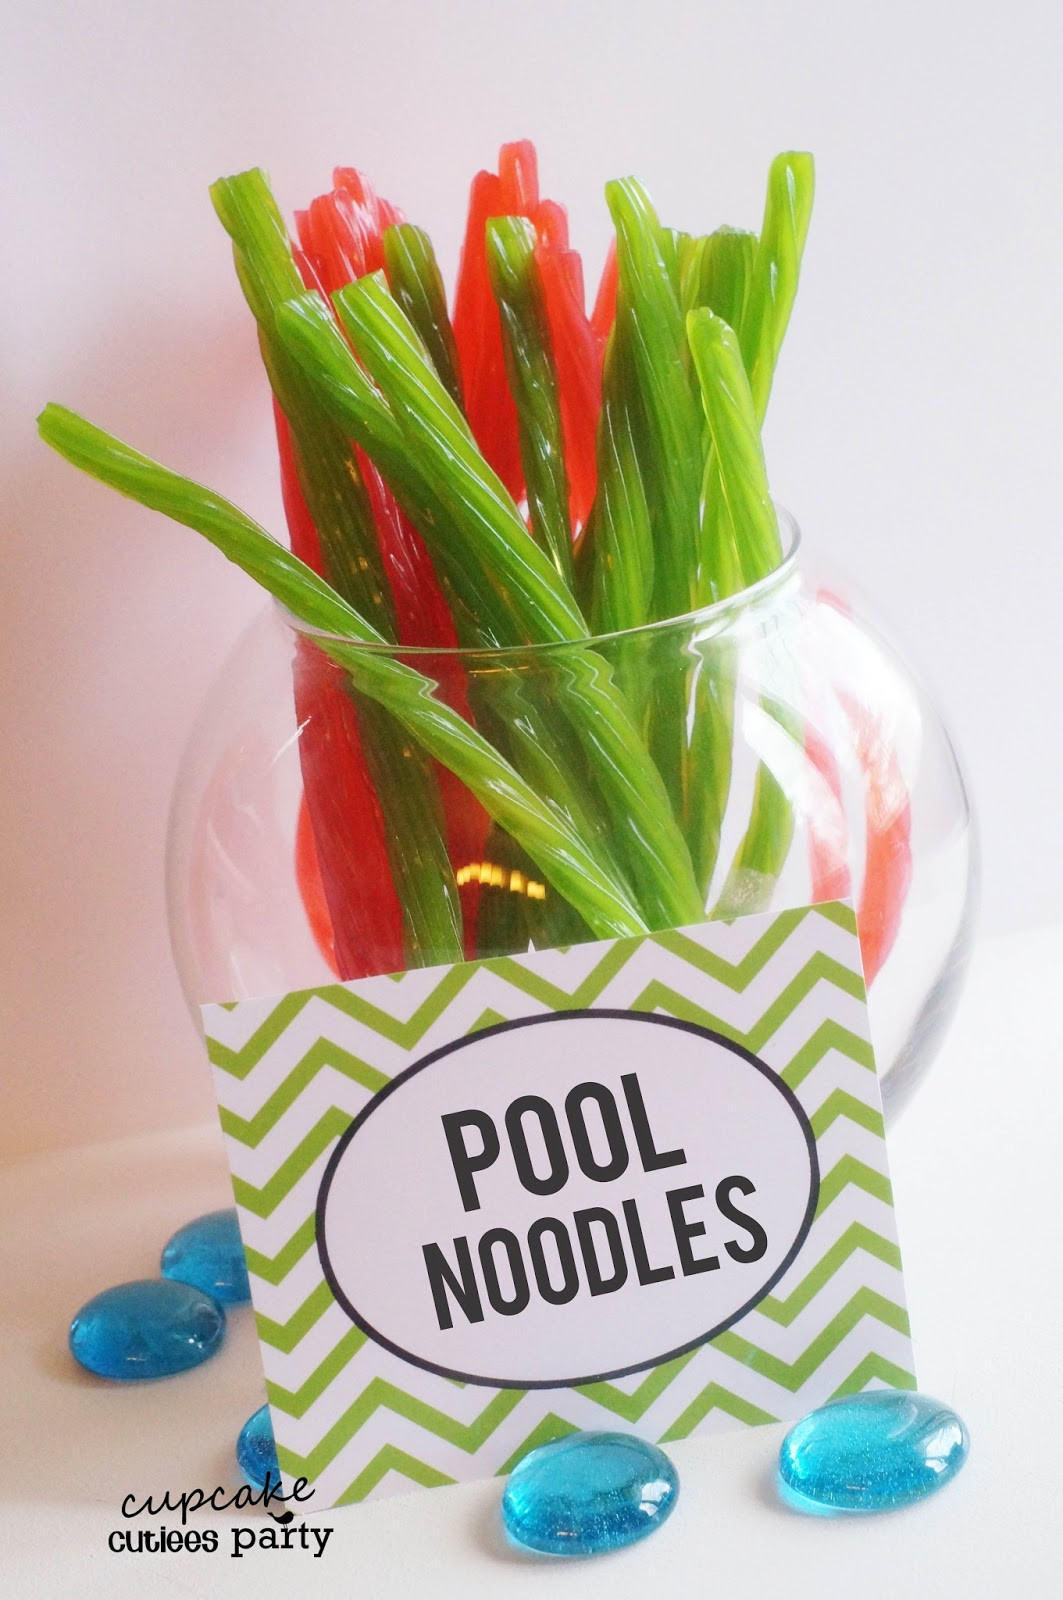 Pool Party Snack Ideas  Cupcake Cutiees Beach Party Pool Party Food Ideas